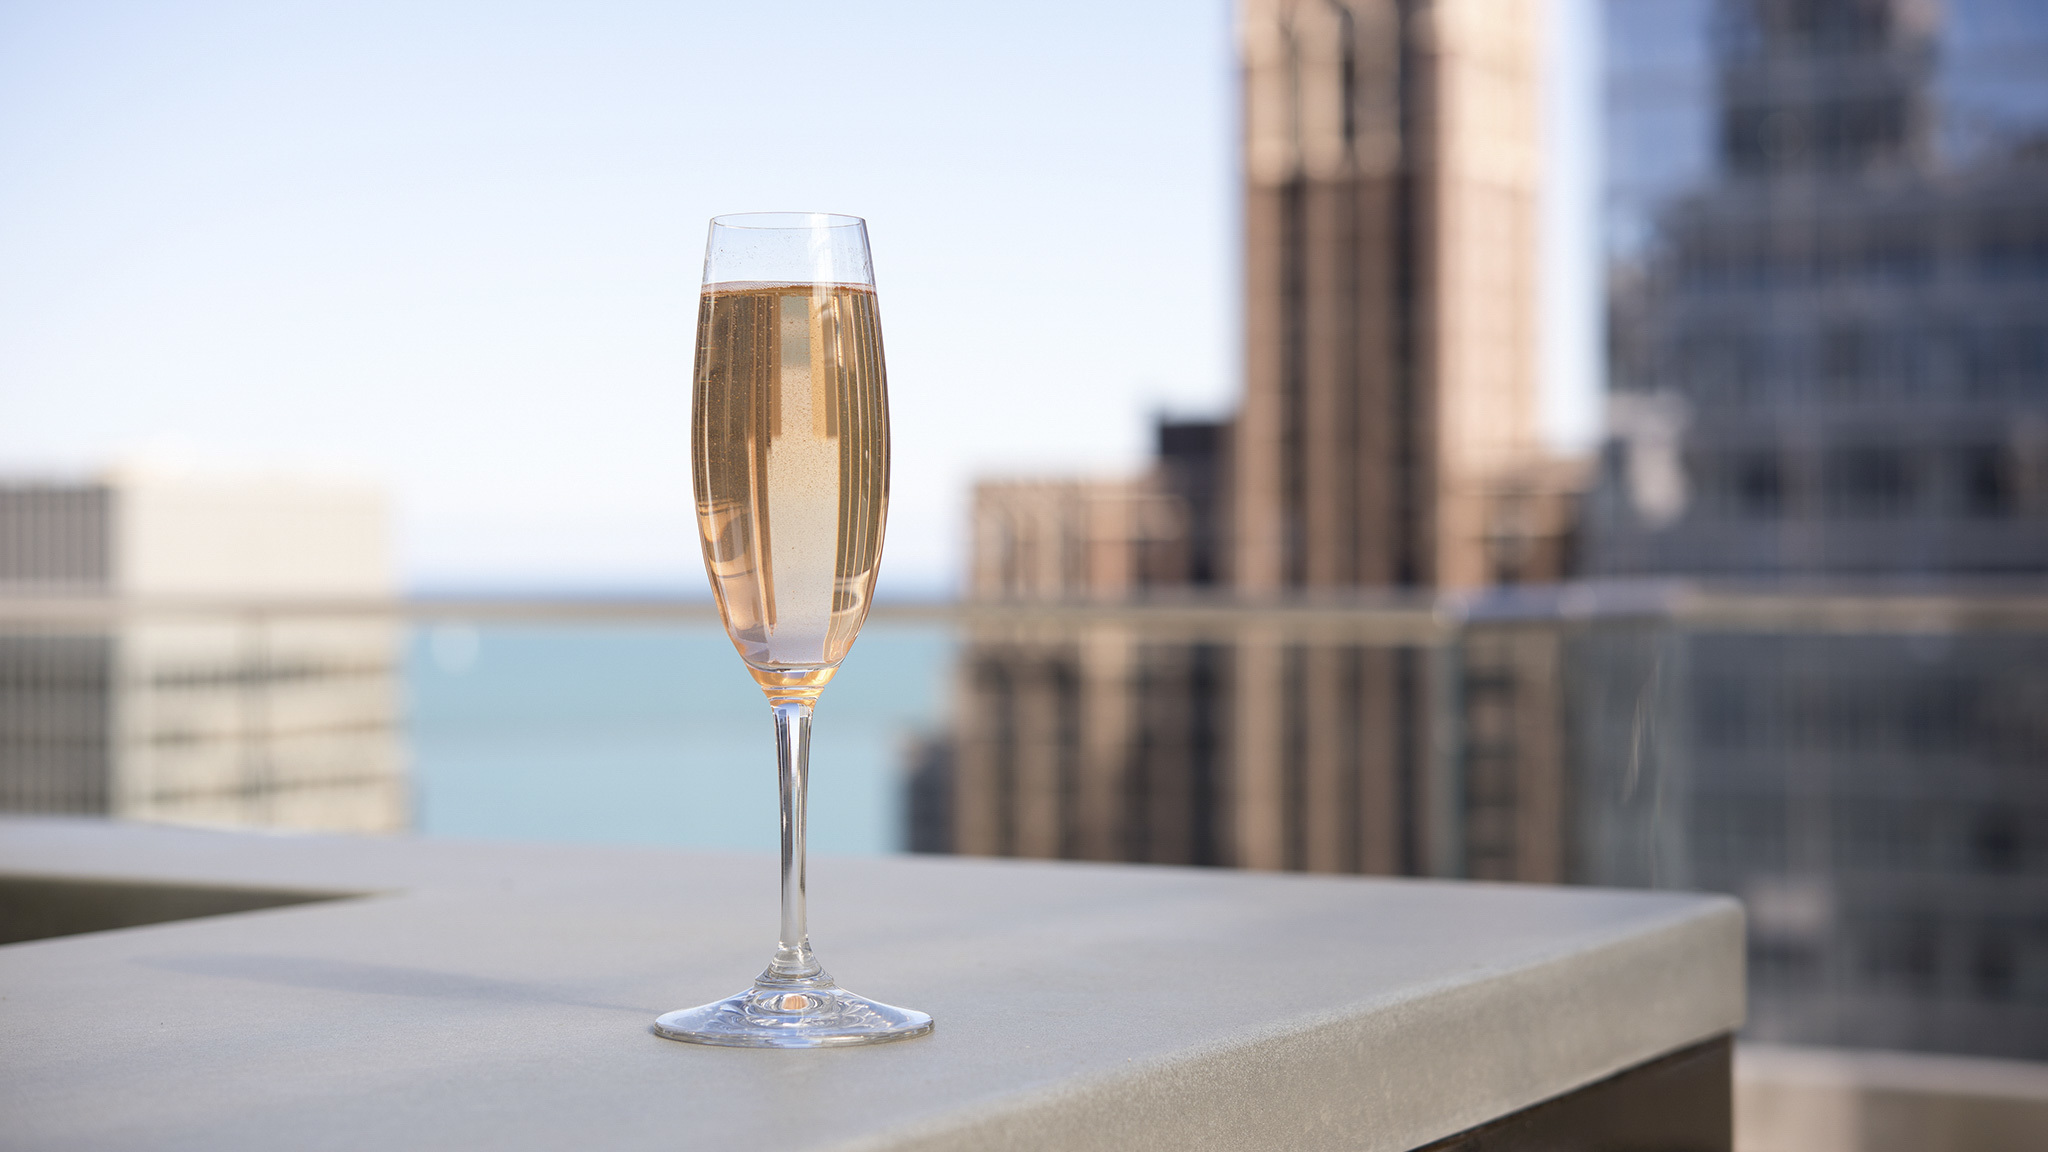 Beer gardens, rooftop bars and outdoor dining spots in Chicago